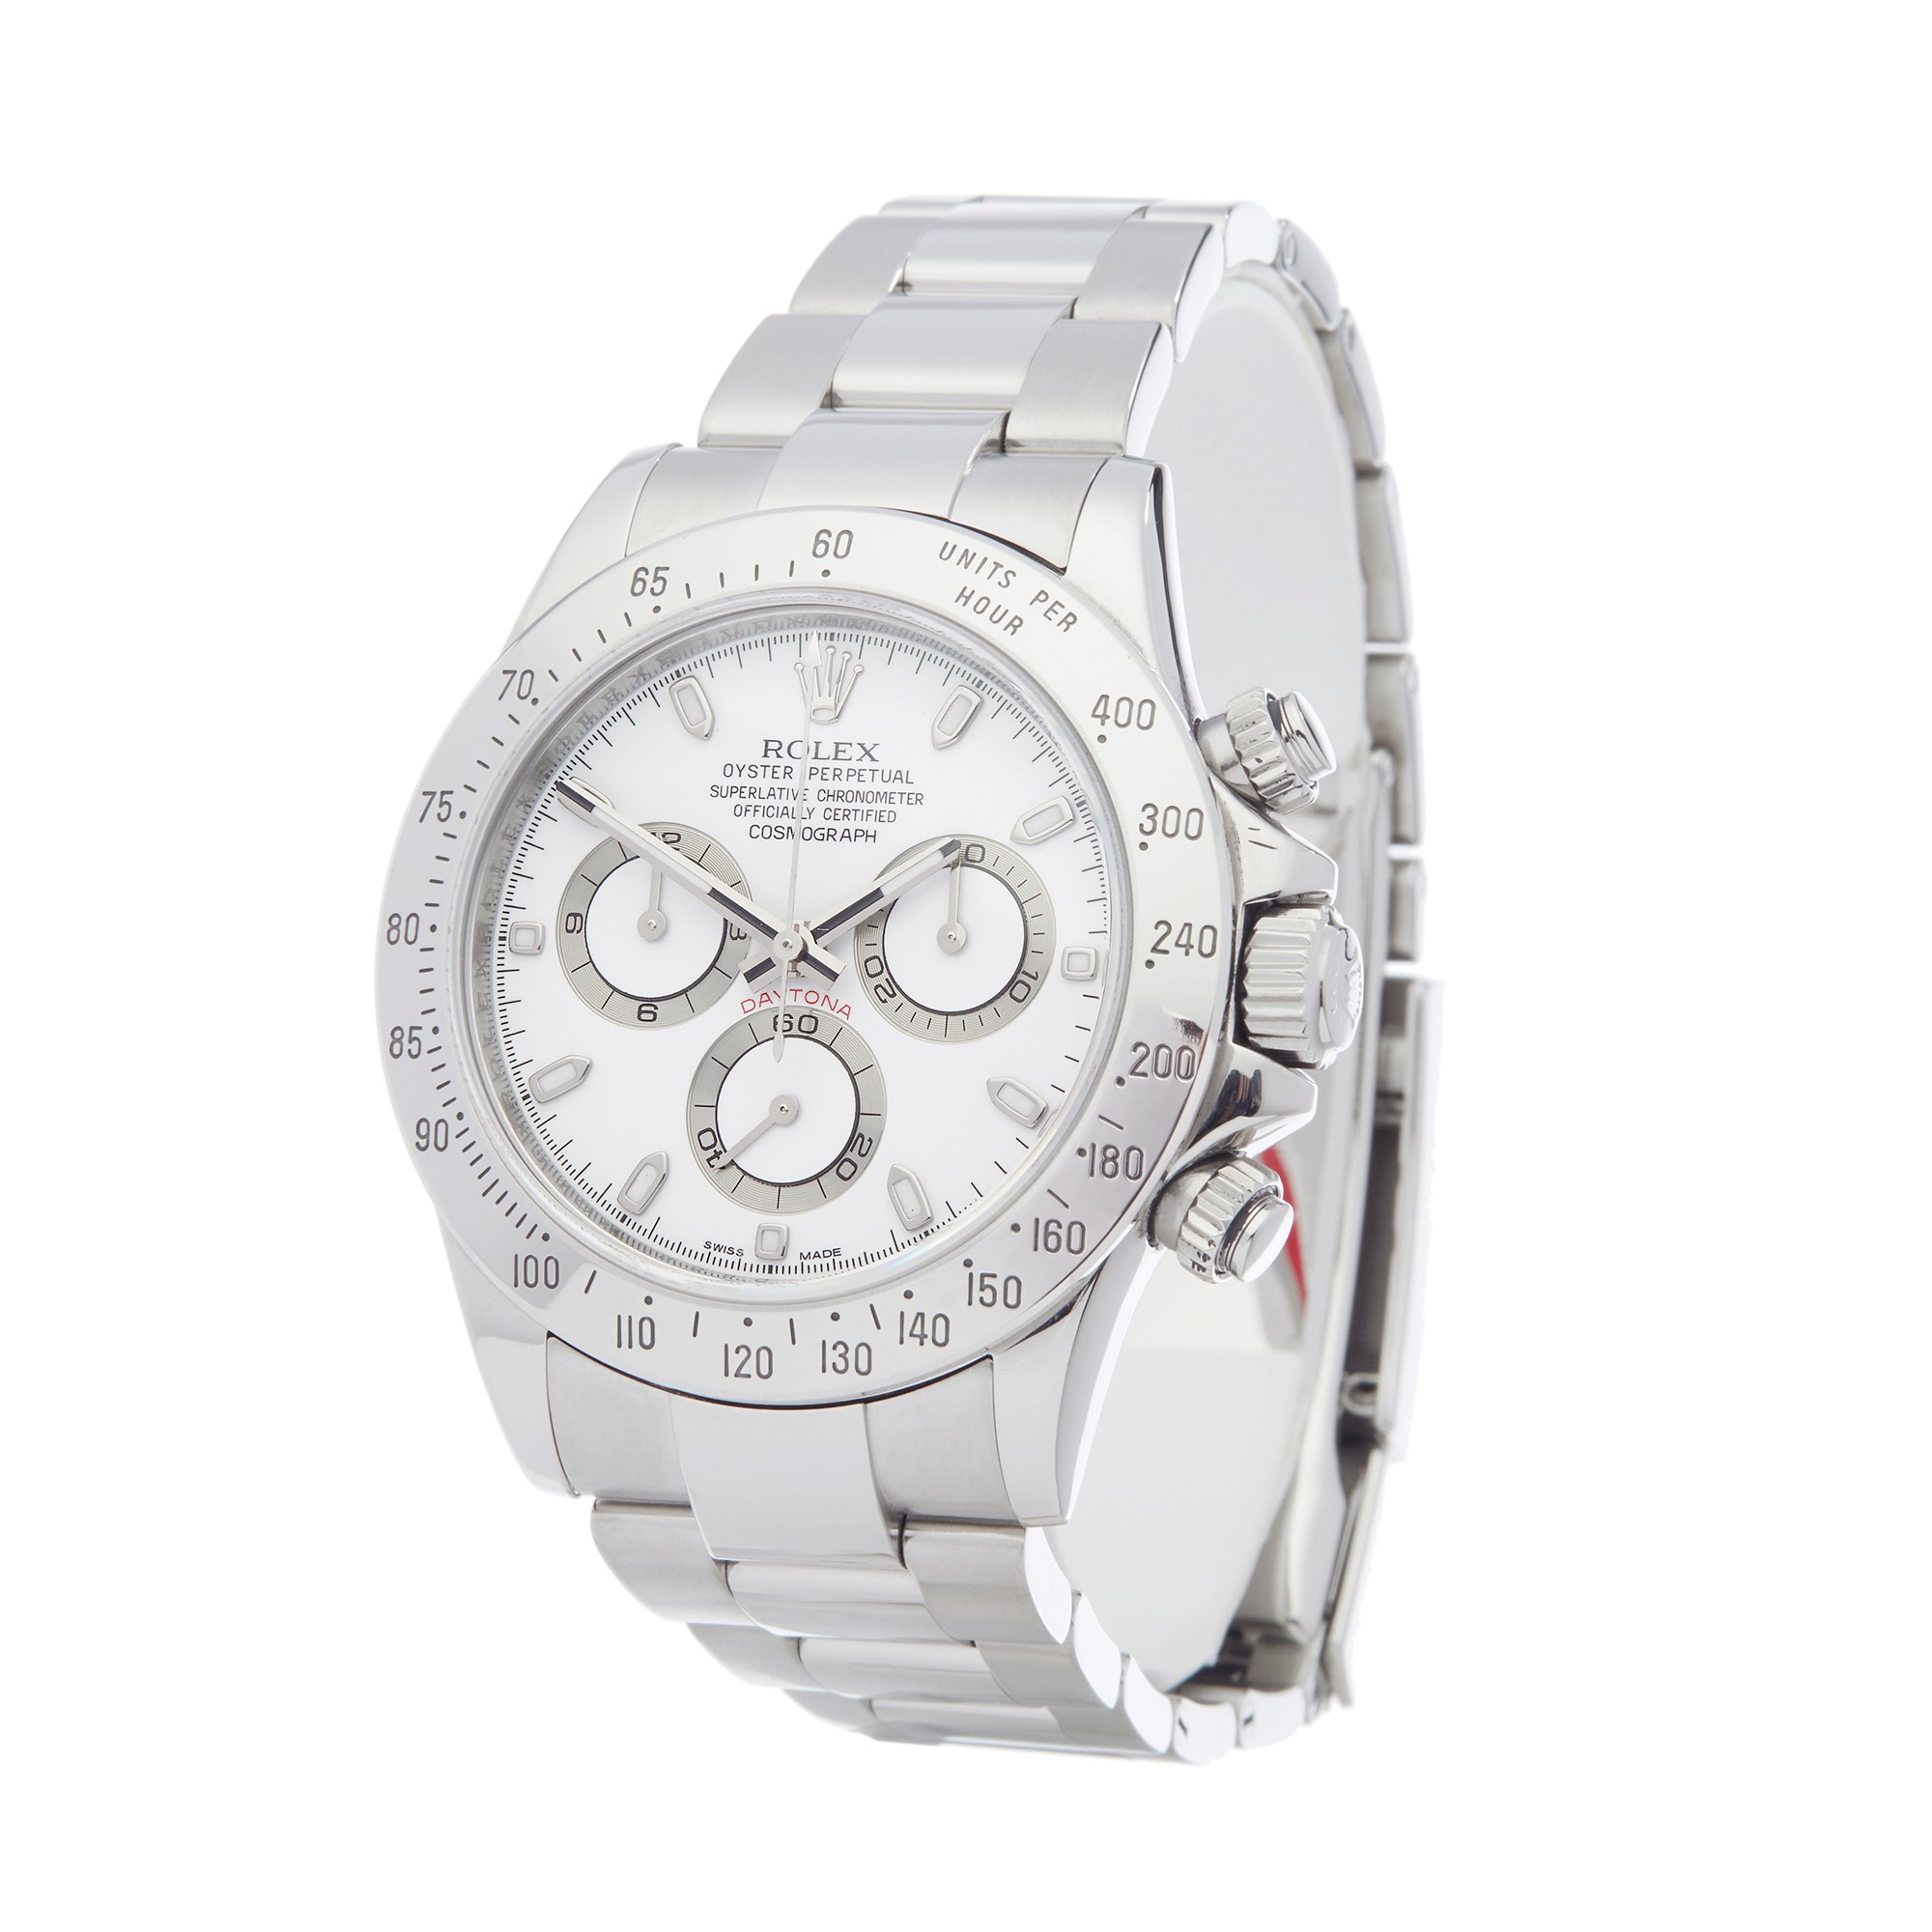 Rolex Daytona APH Chronograph Stainless Steel 116520